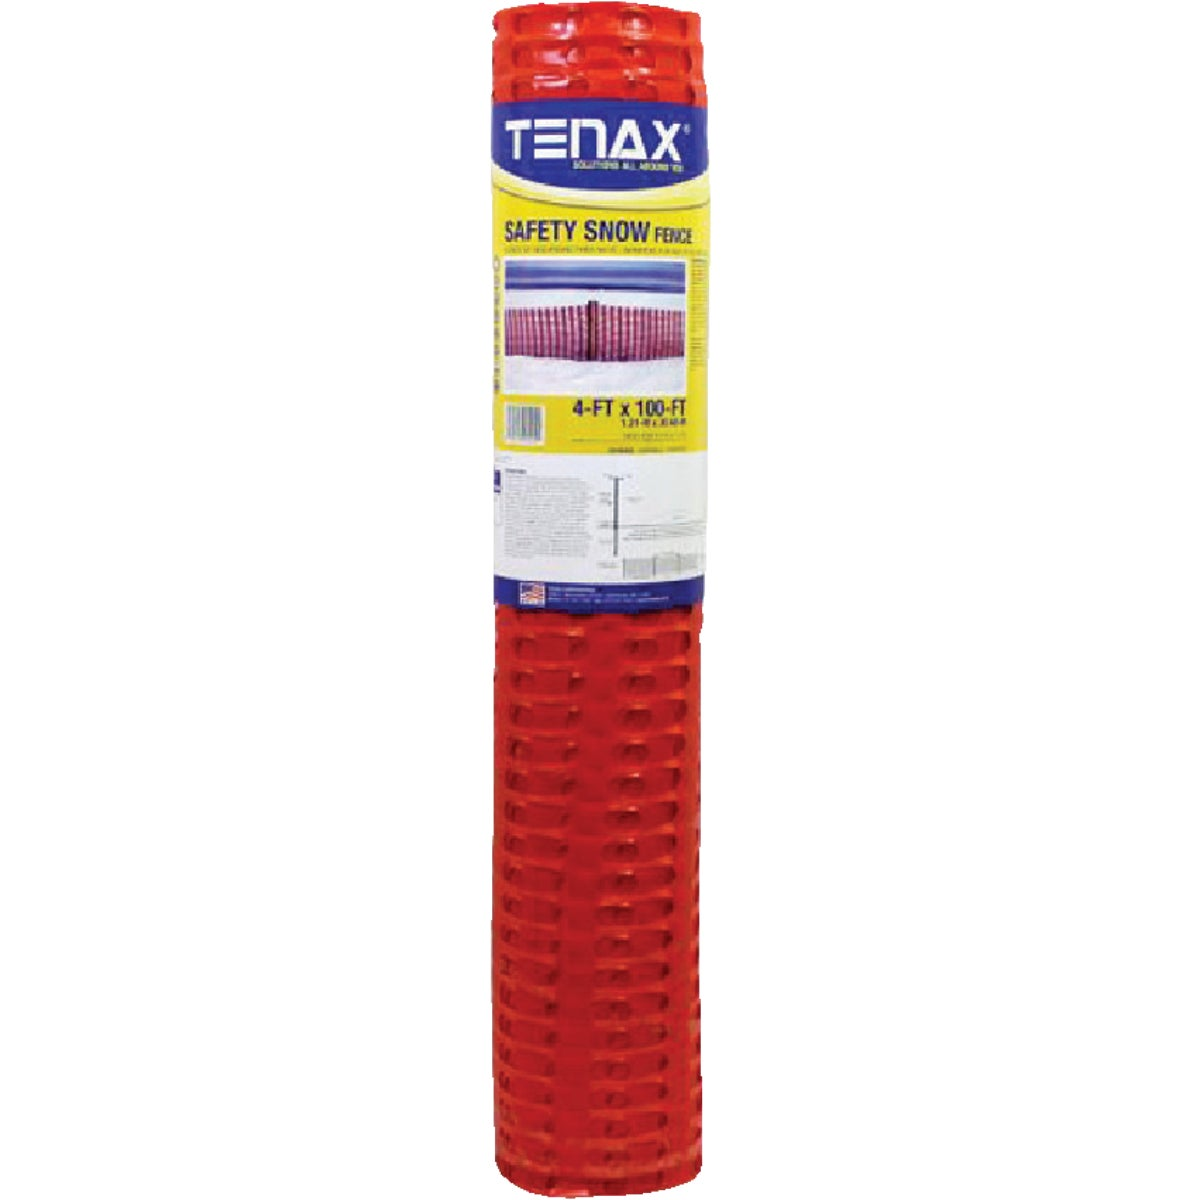 4X100 ORNG SAFTSNO FENCE - 001041 by Tenax Corporation